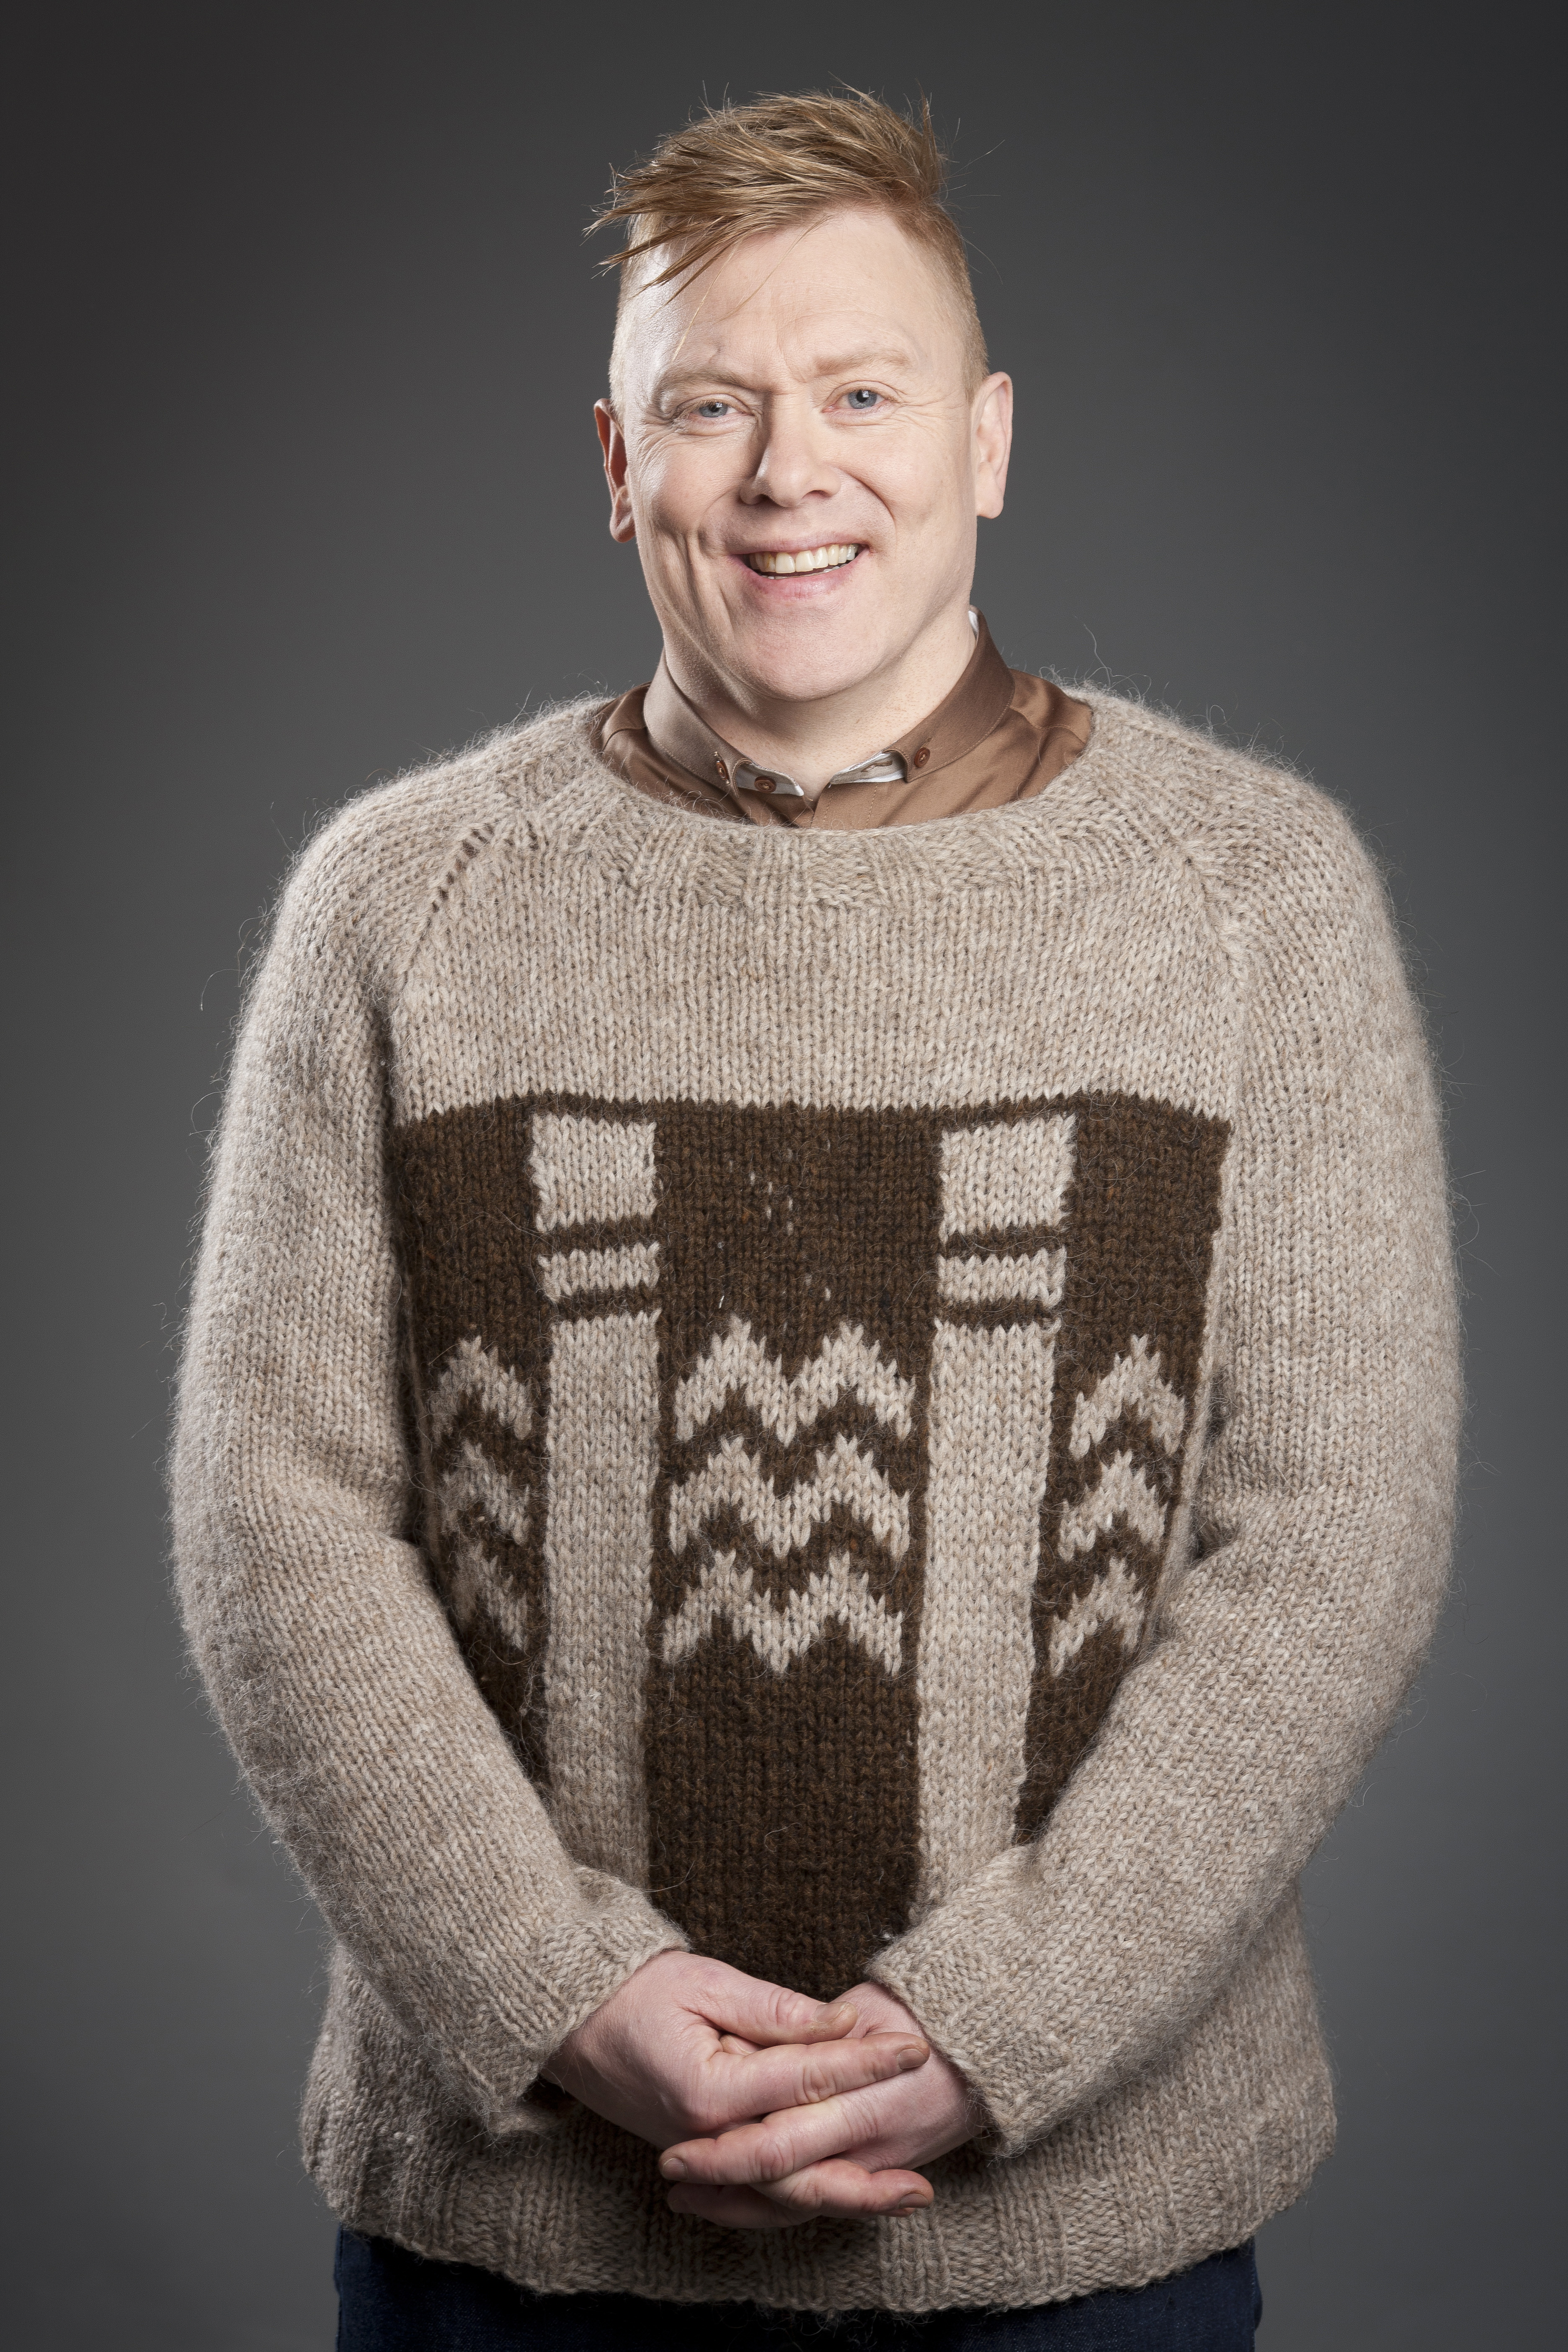 PRESS RELEASE: Melville House to publish book by mayor of Reykjavík, Jón Gnarr